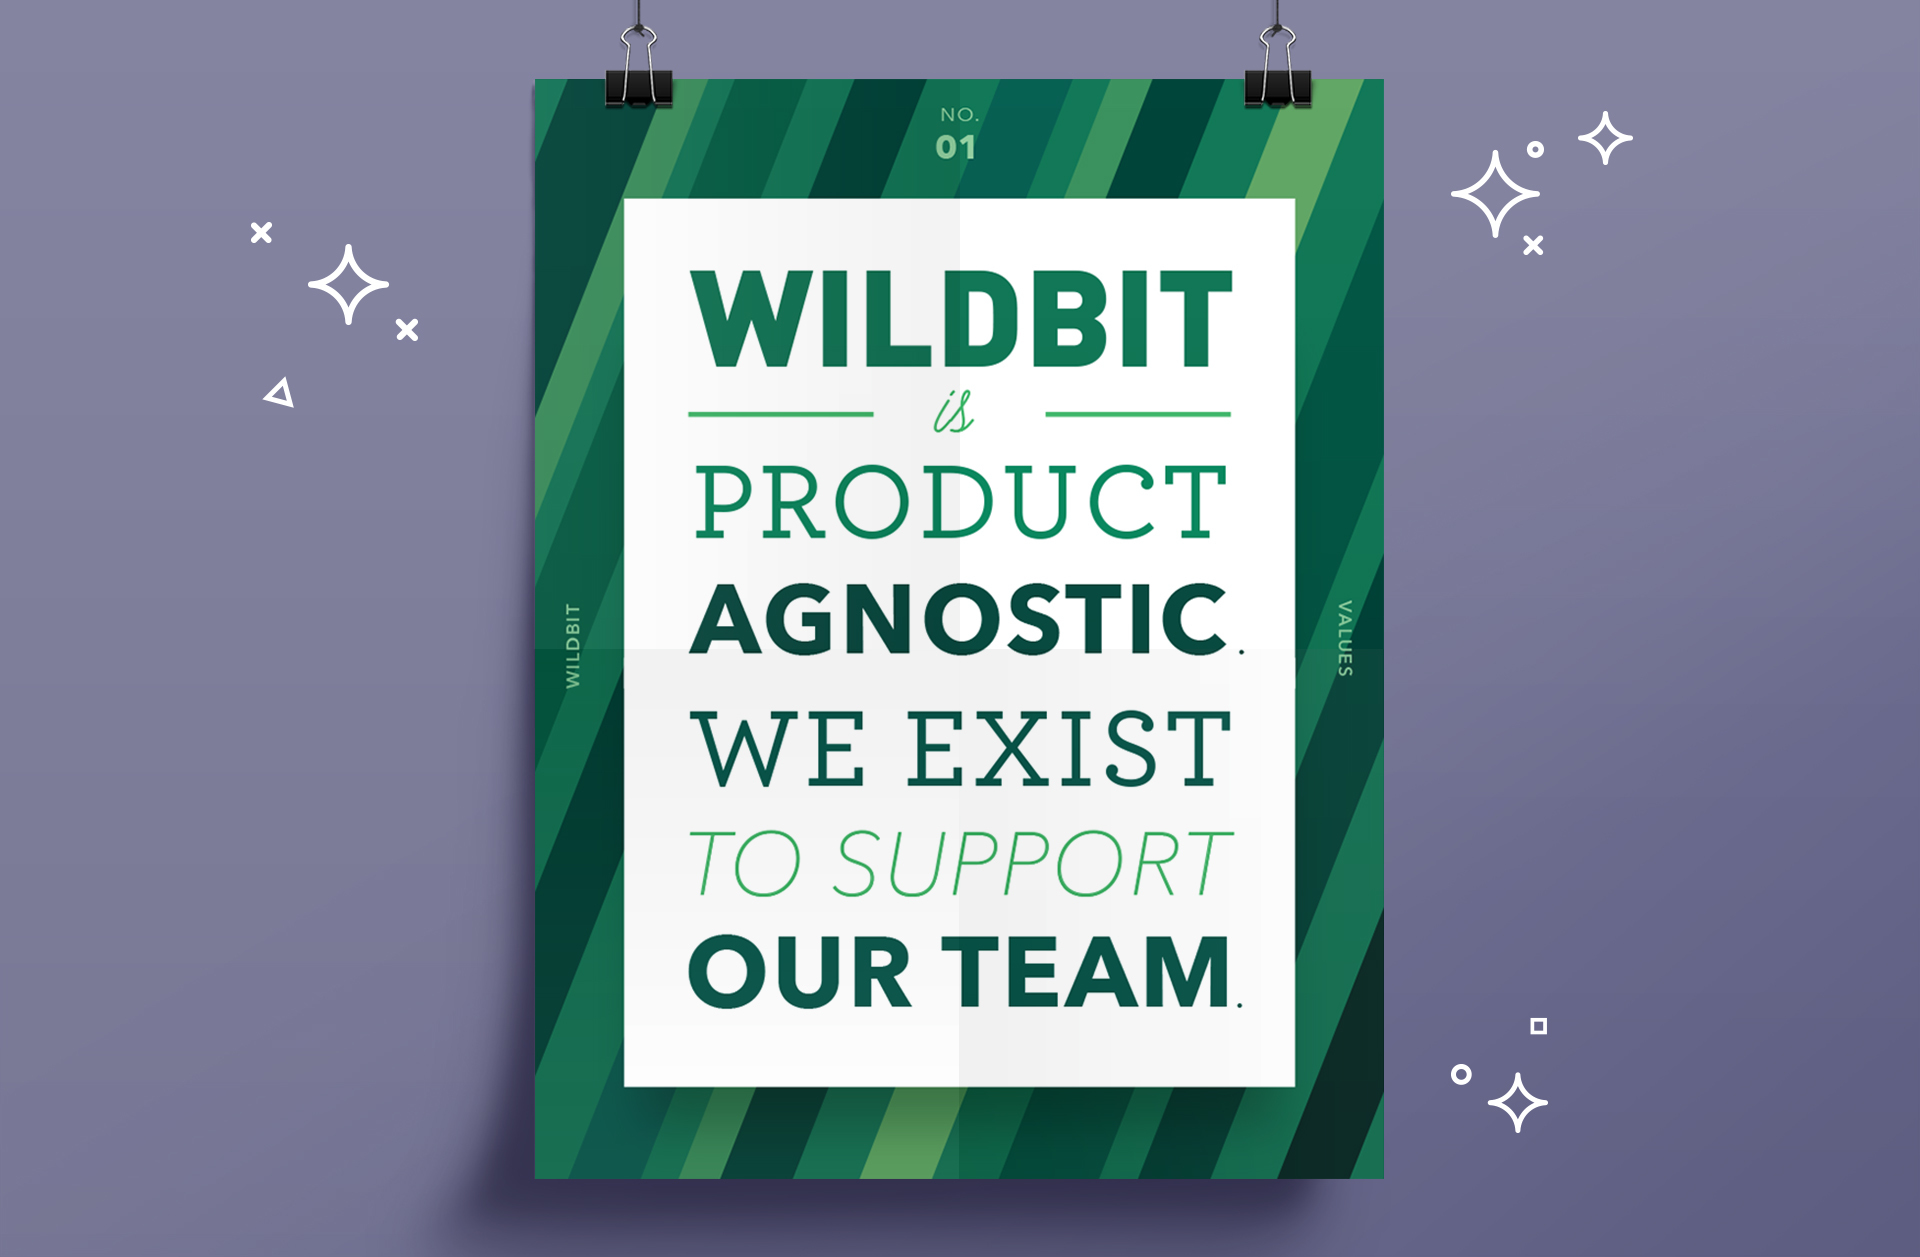 Wildbit is product agnostic. We exist to support our team.